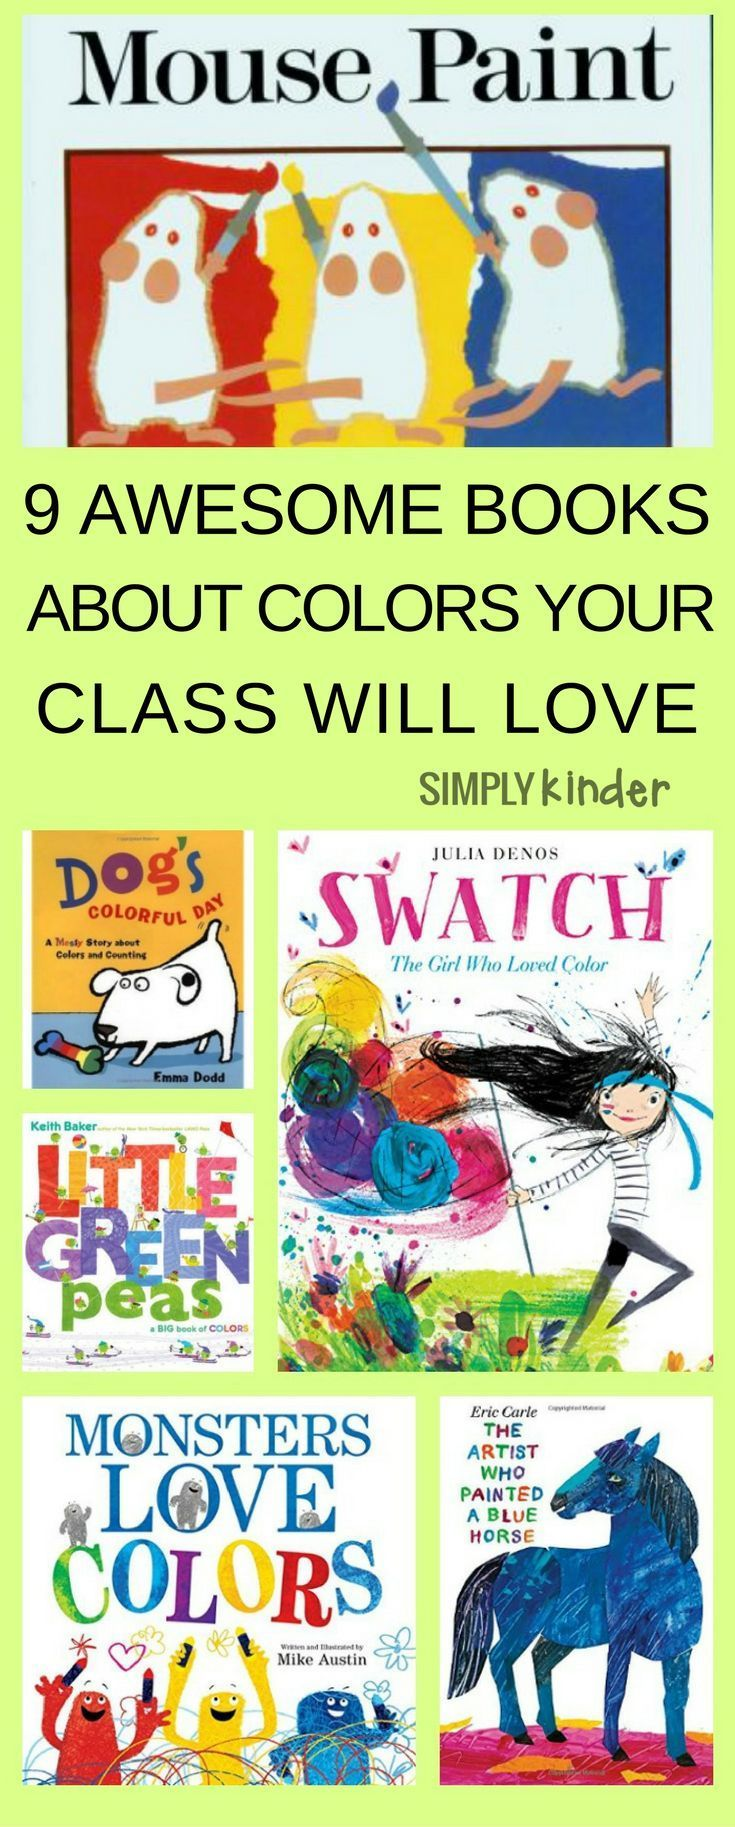 9 Awesome Books About Color Your Class Will Love | Pinterest ...